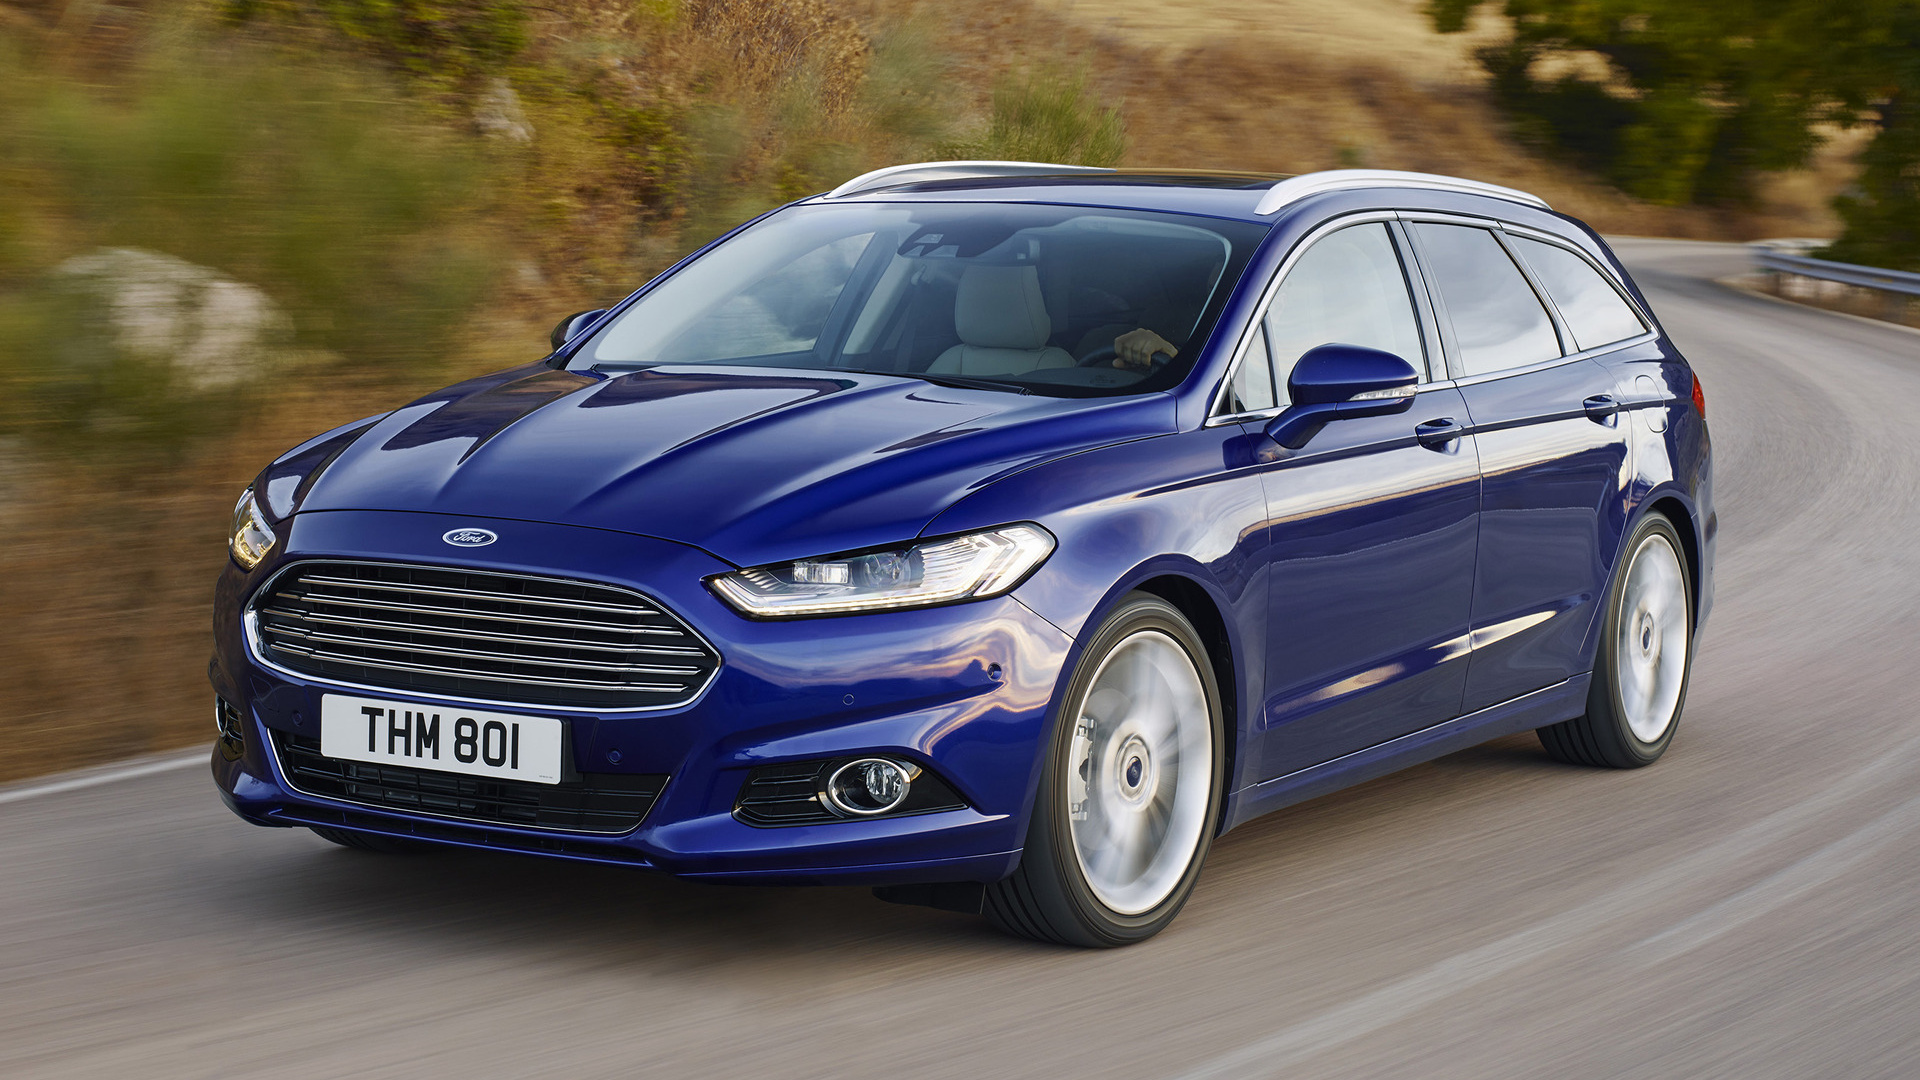 ford mondeo turnier 2014 wallpapers and hd images car pixel. Black Bedroom Furniture Sets. Home Design Ideas